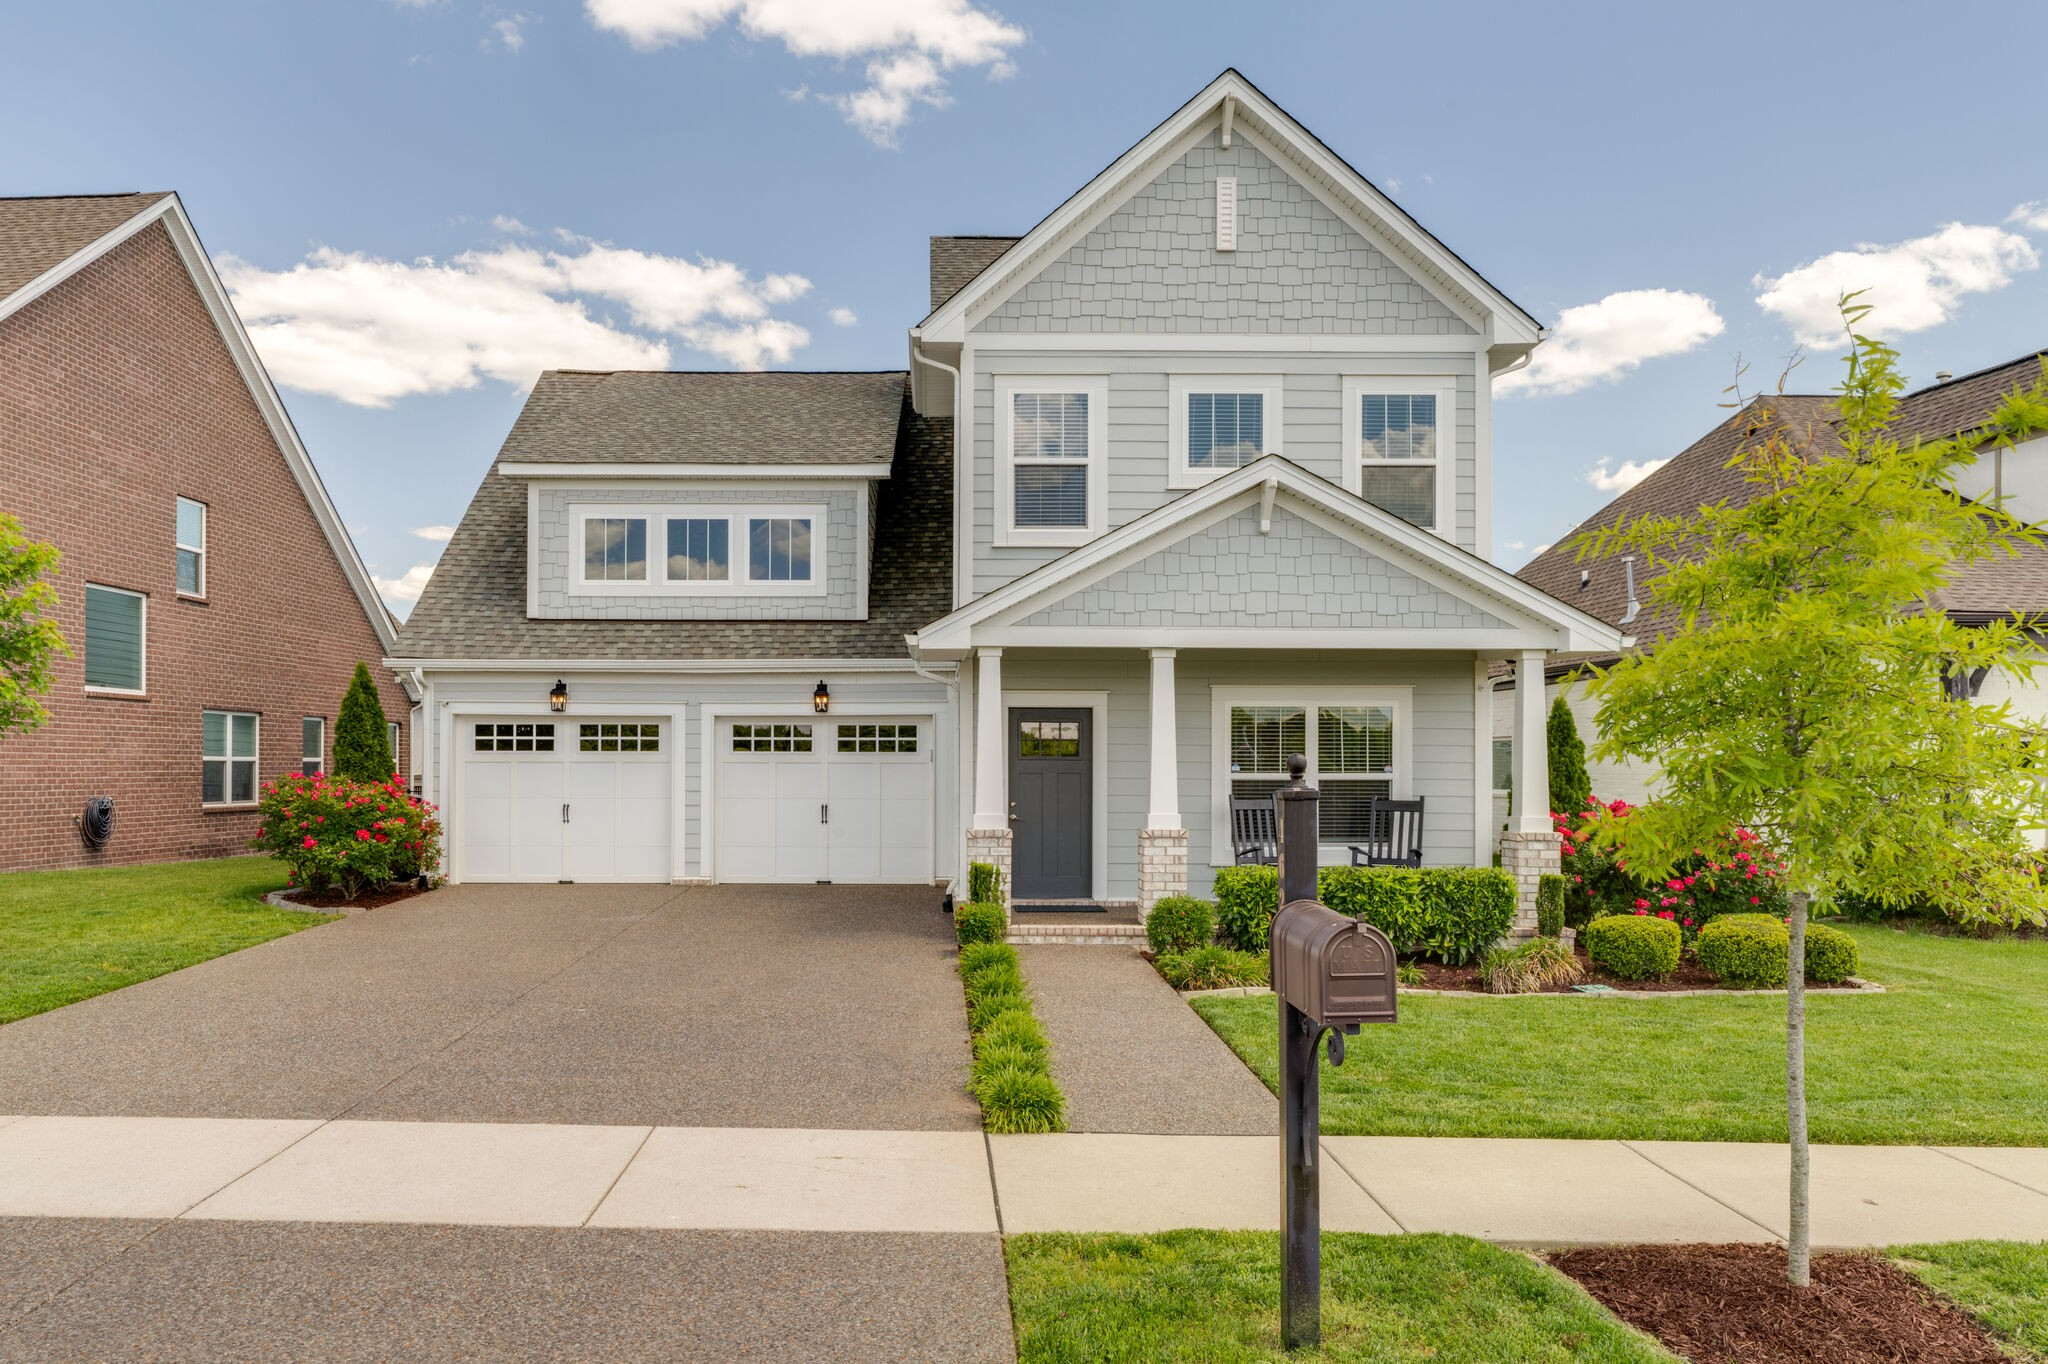 462 Carriage House Ln